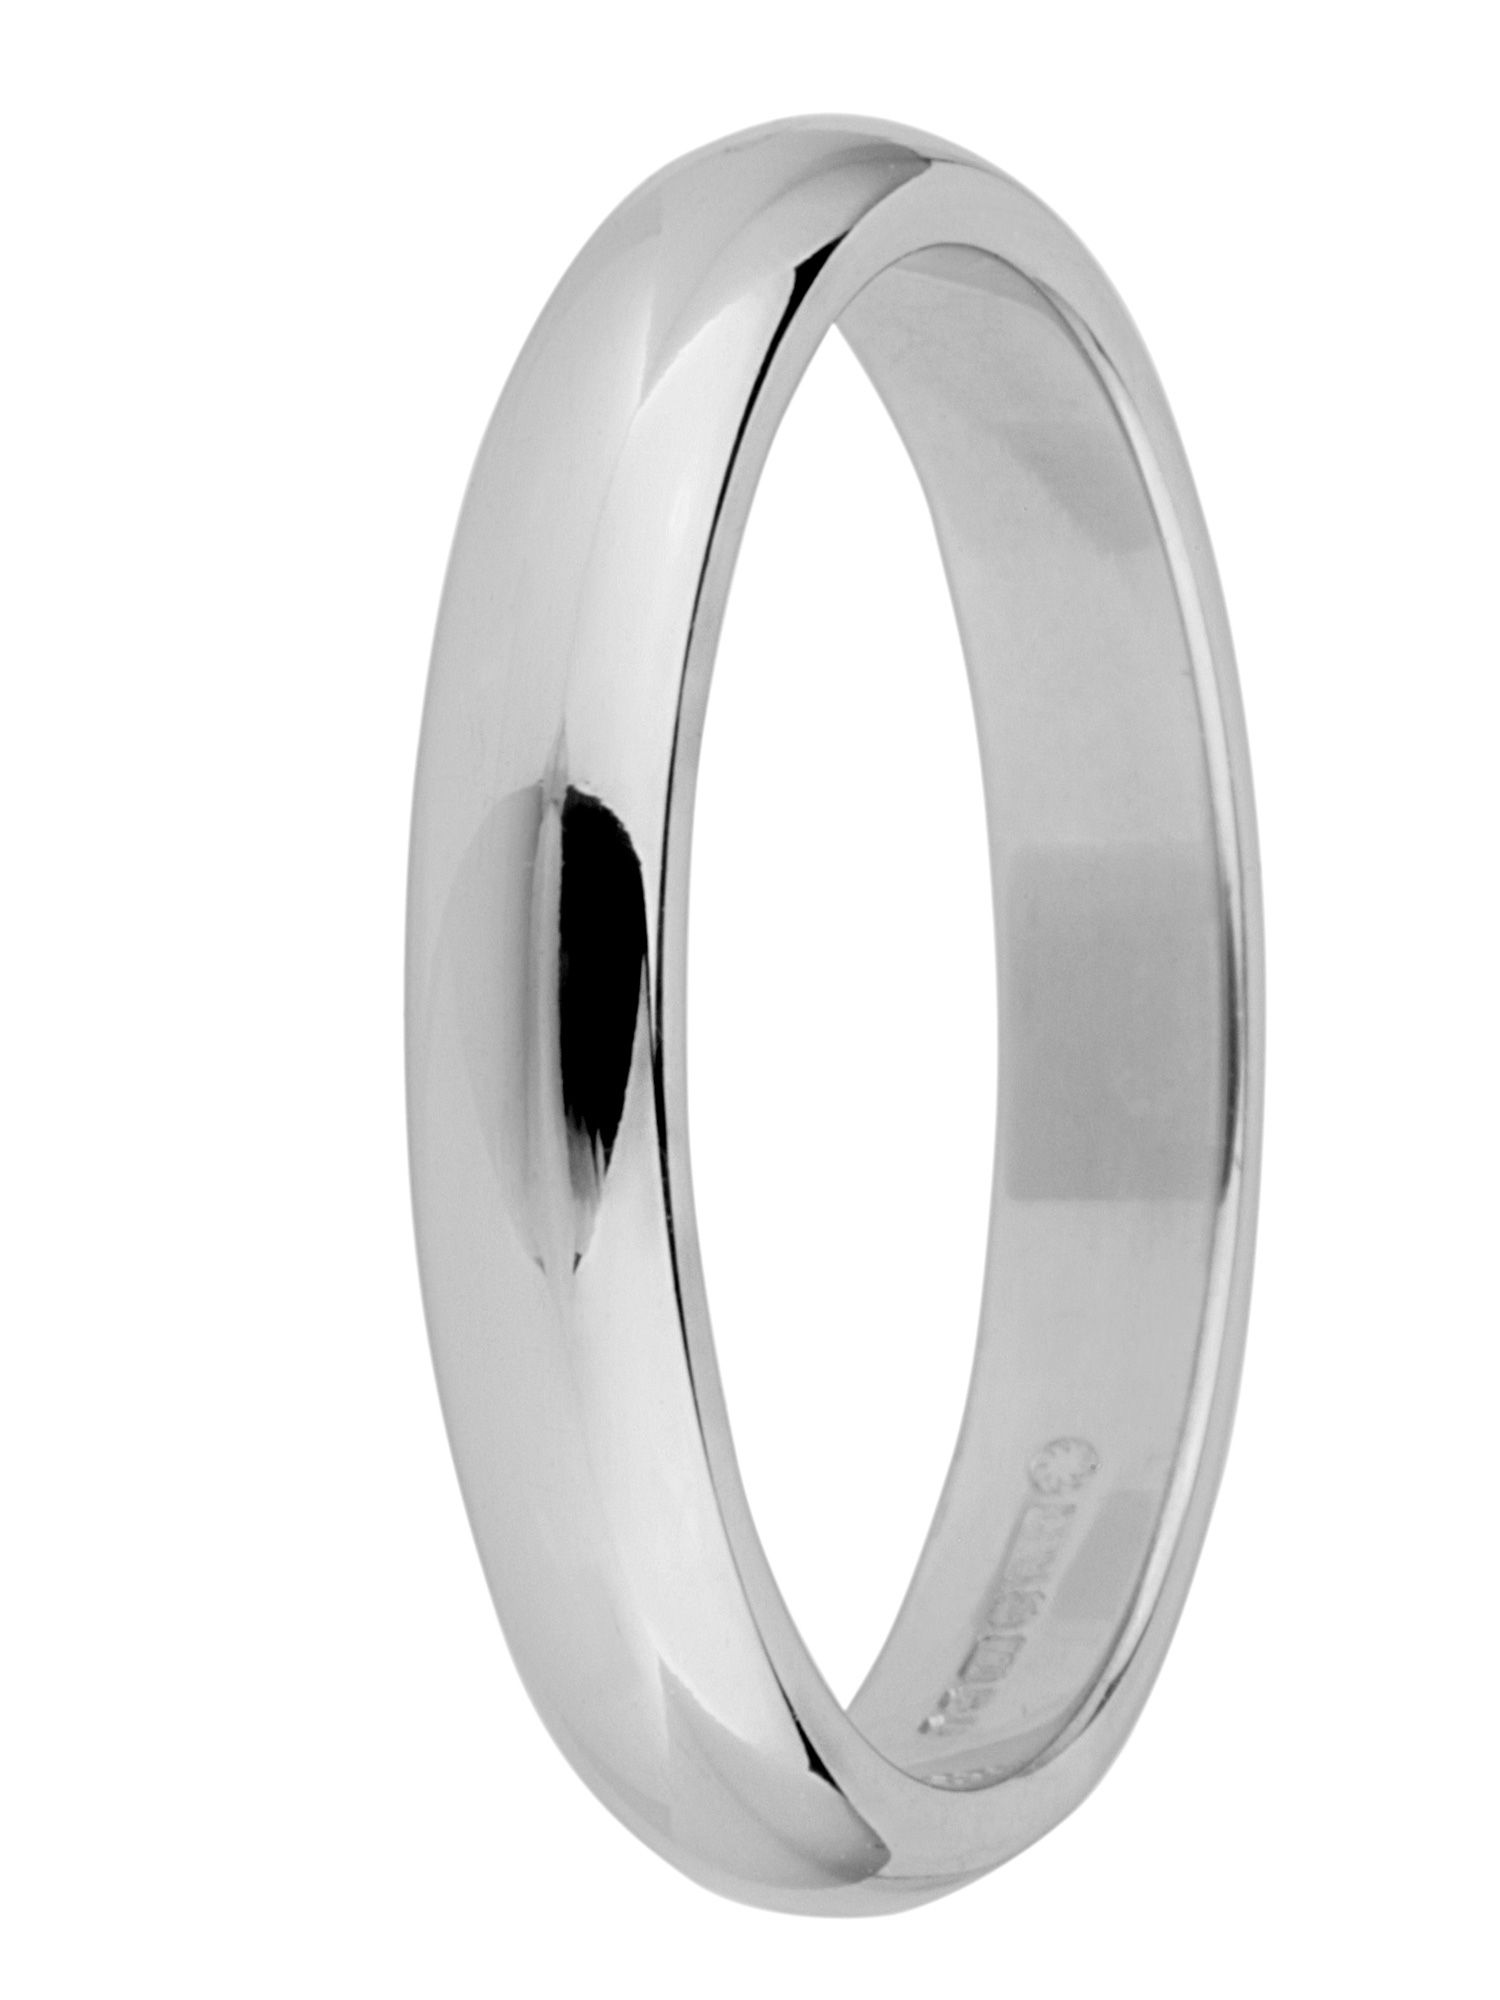 Brides 18ct gold 3mm court wedding ring - White Gold